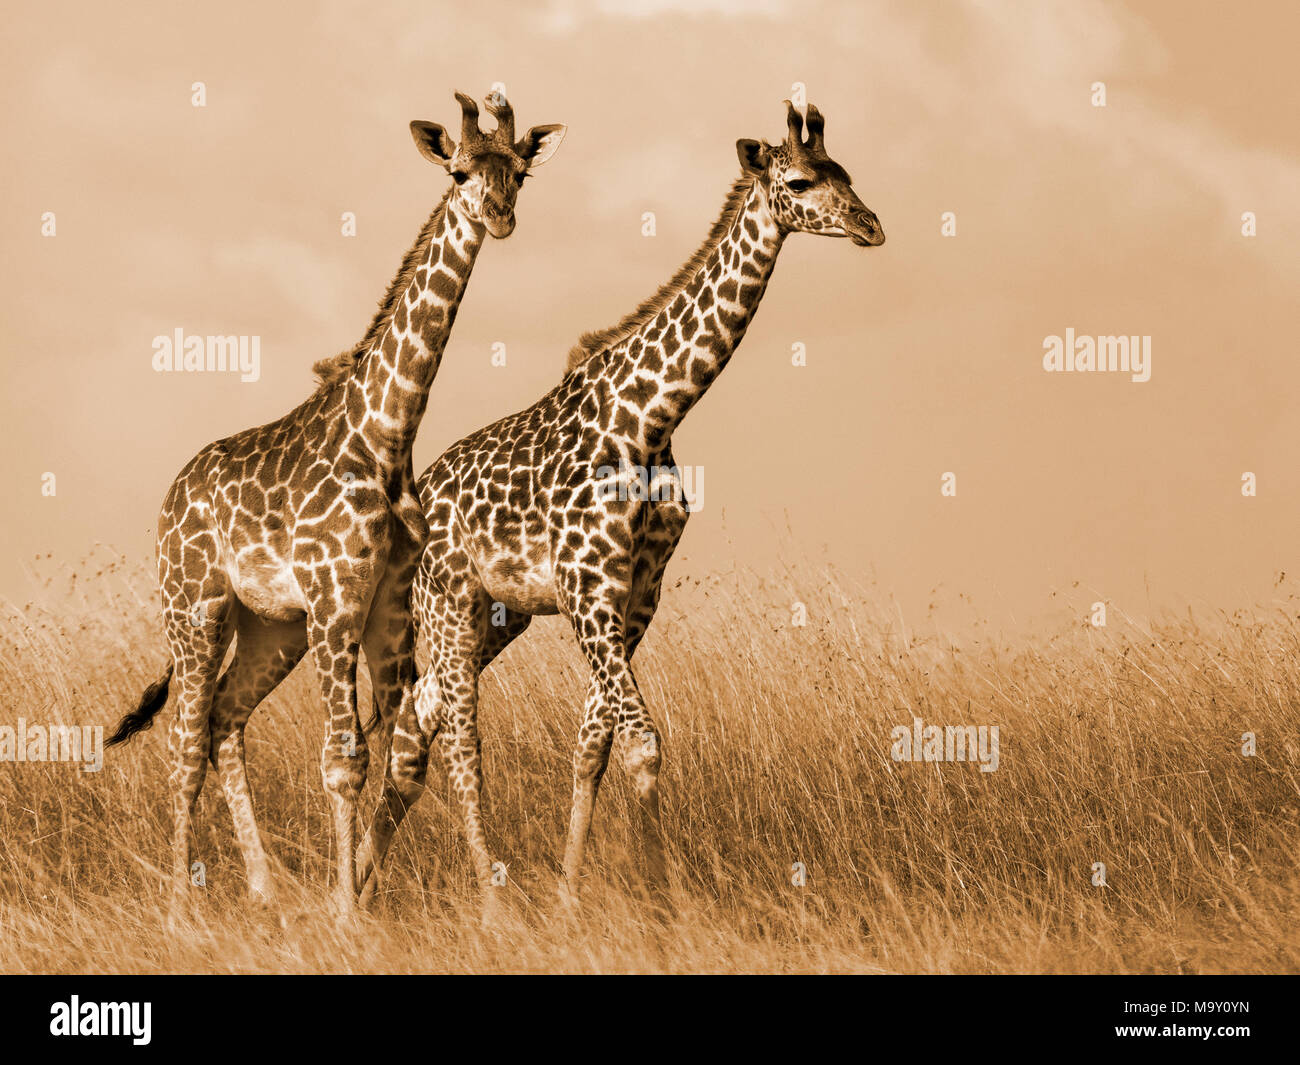 Giraffes in Savannah - Stock Image